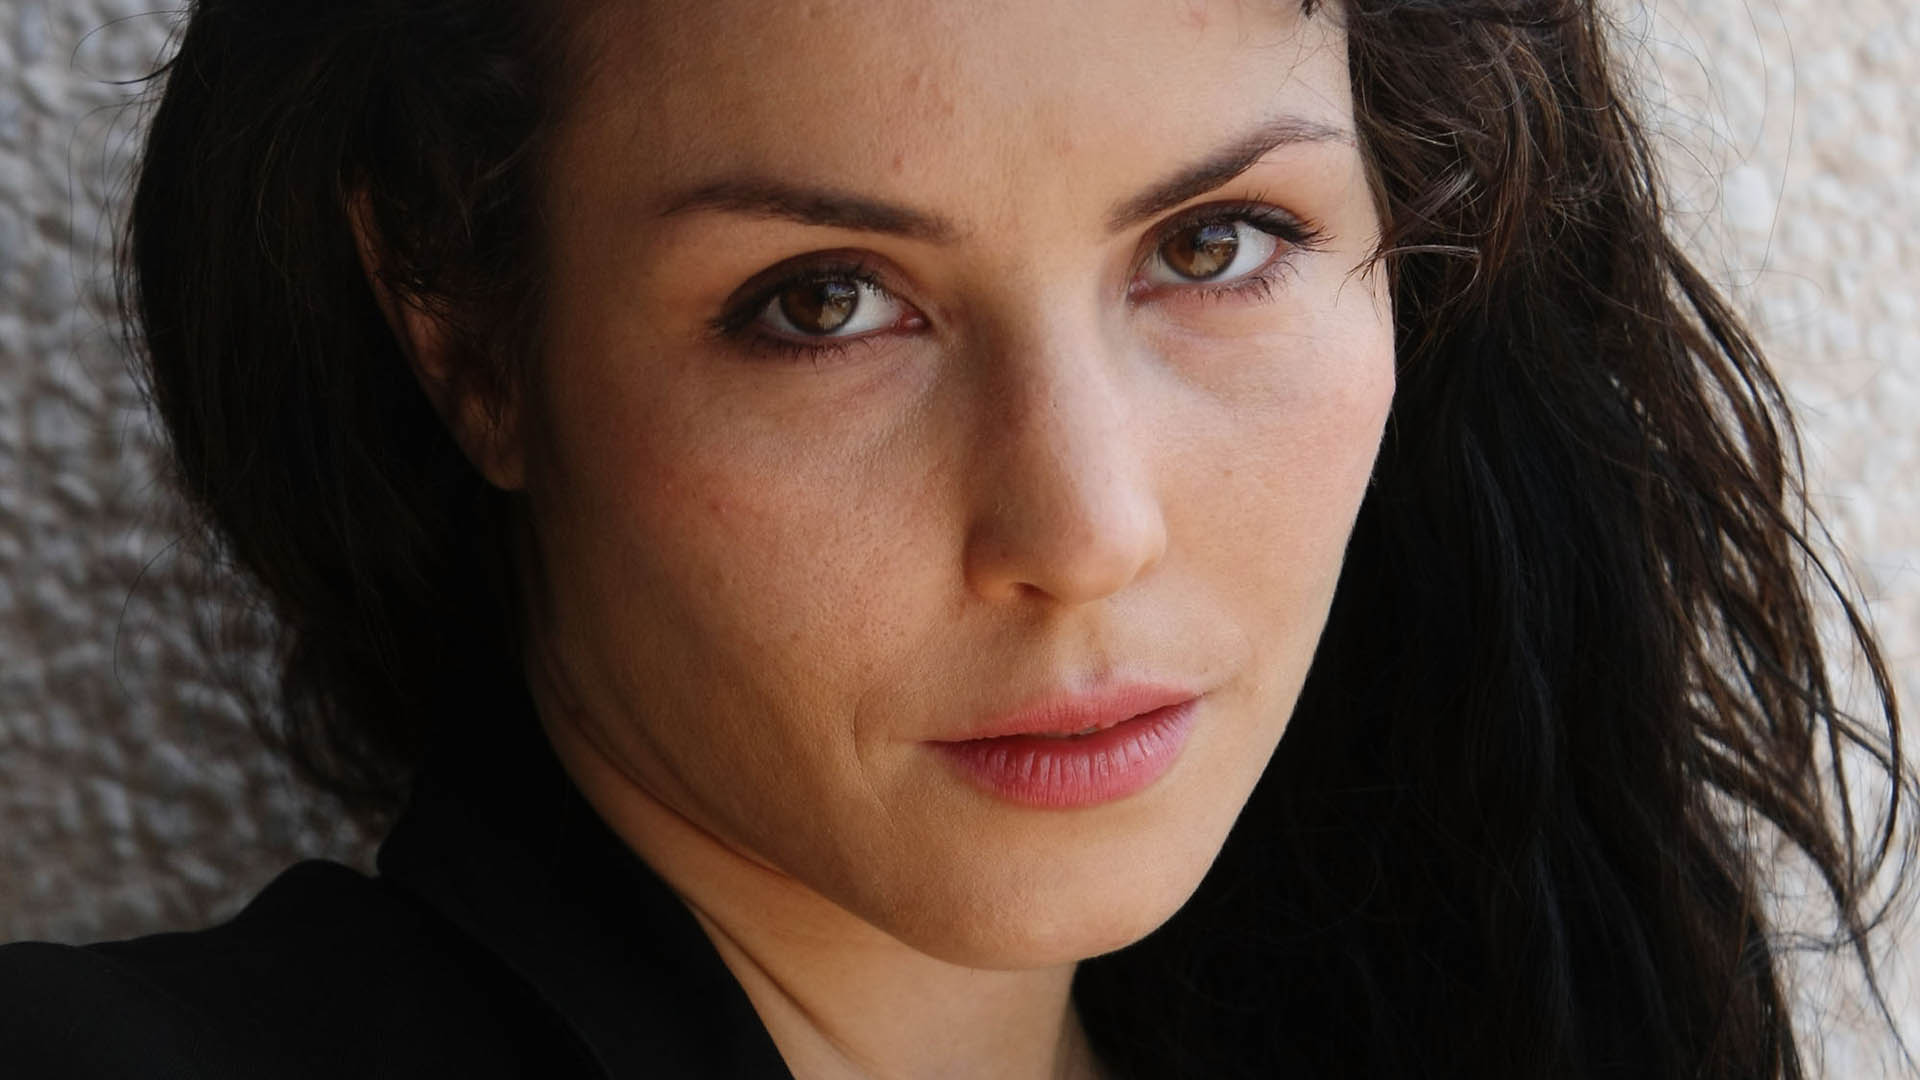 Noomi Rapace Wallpapers hd